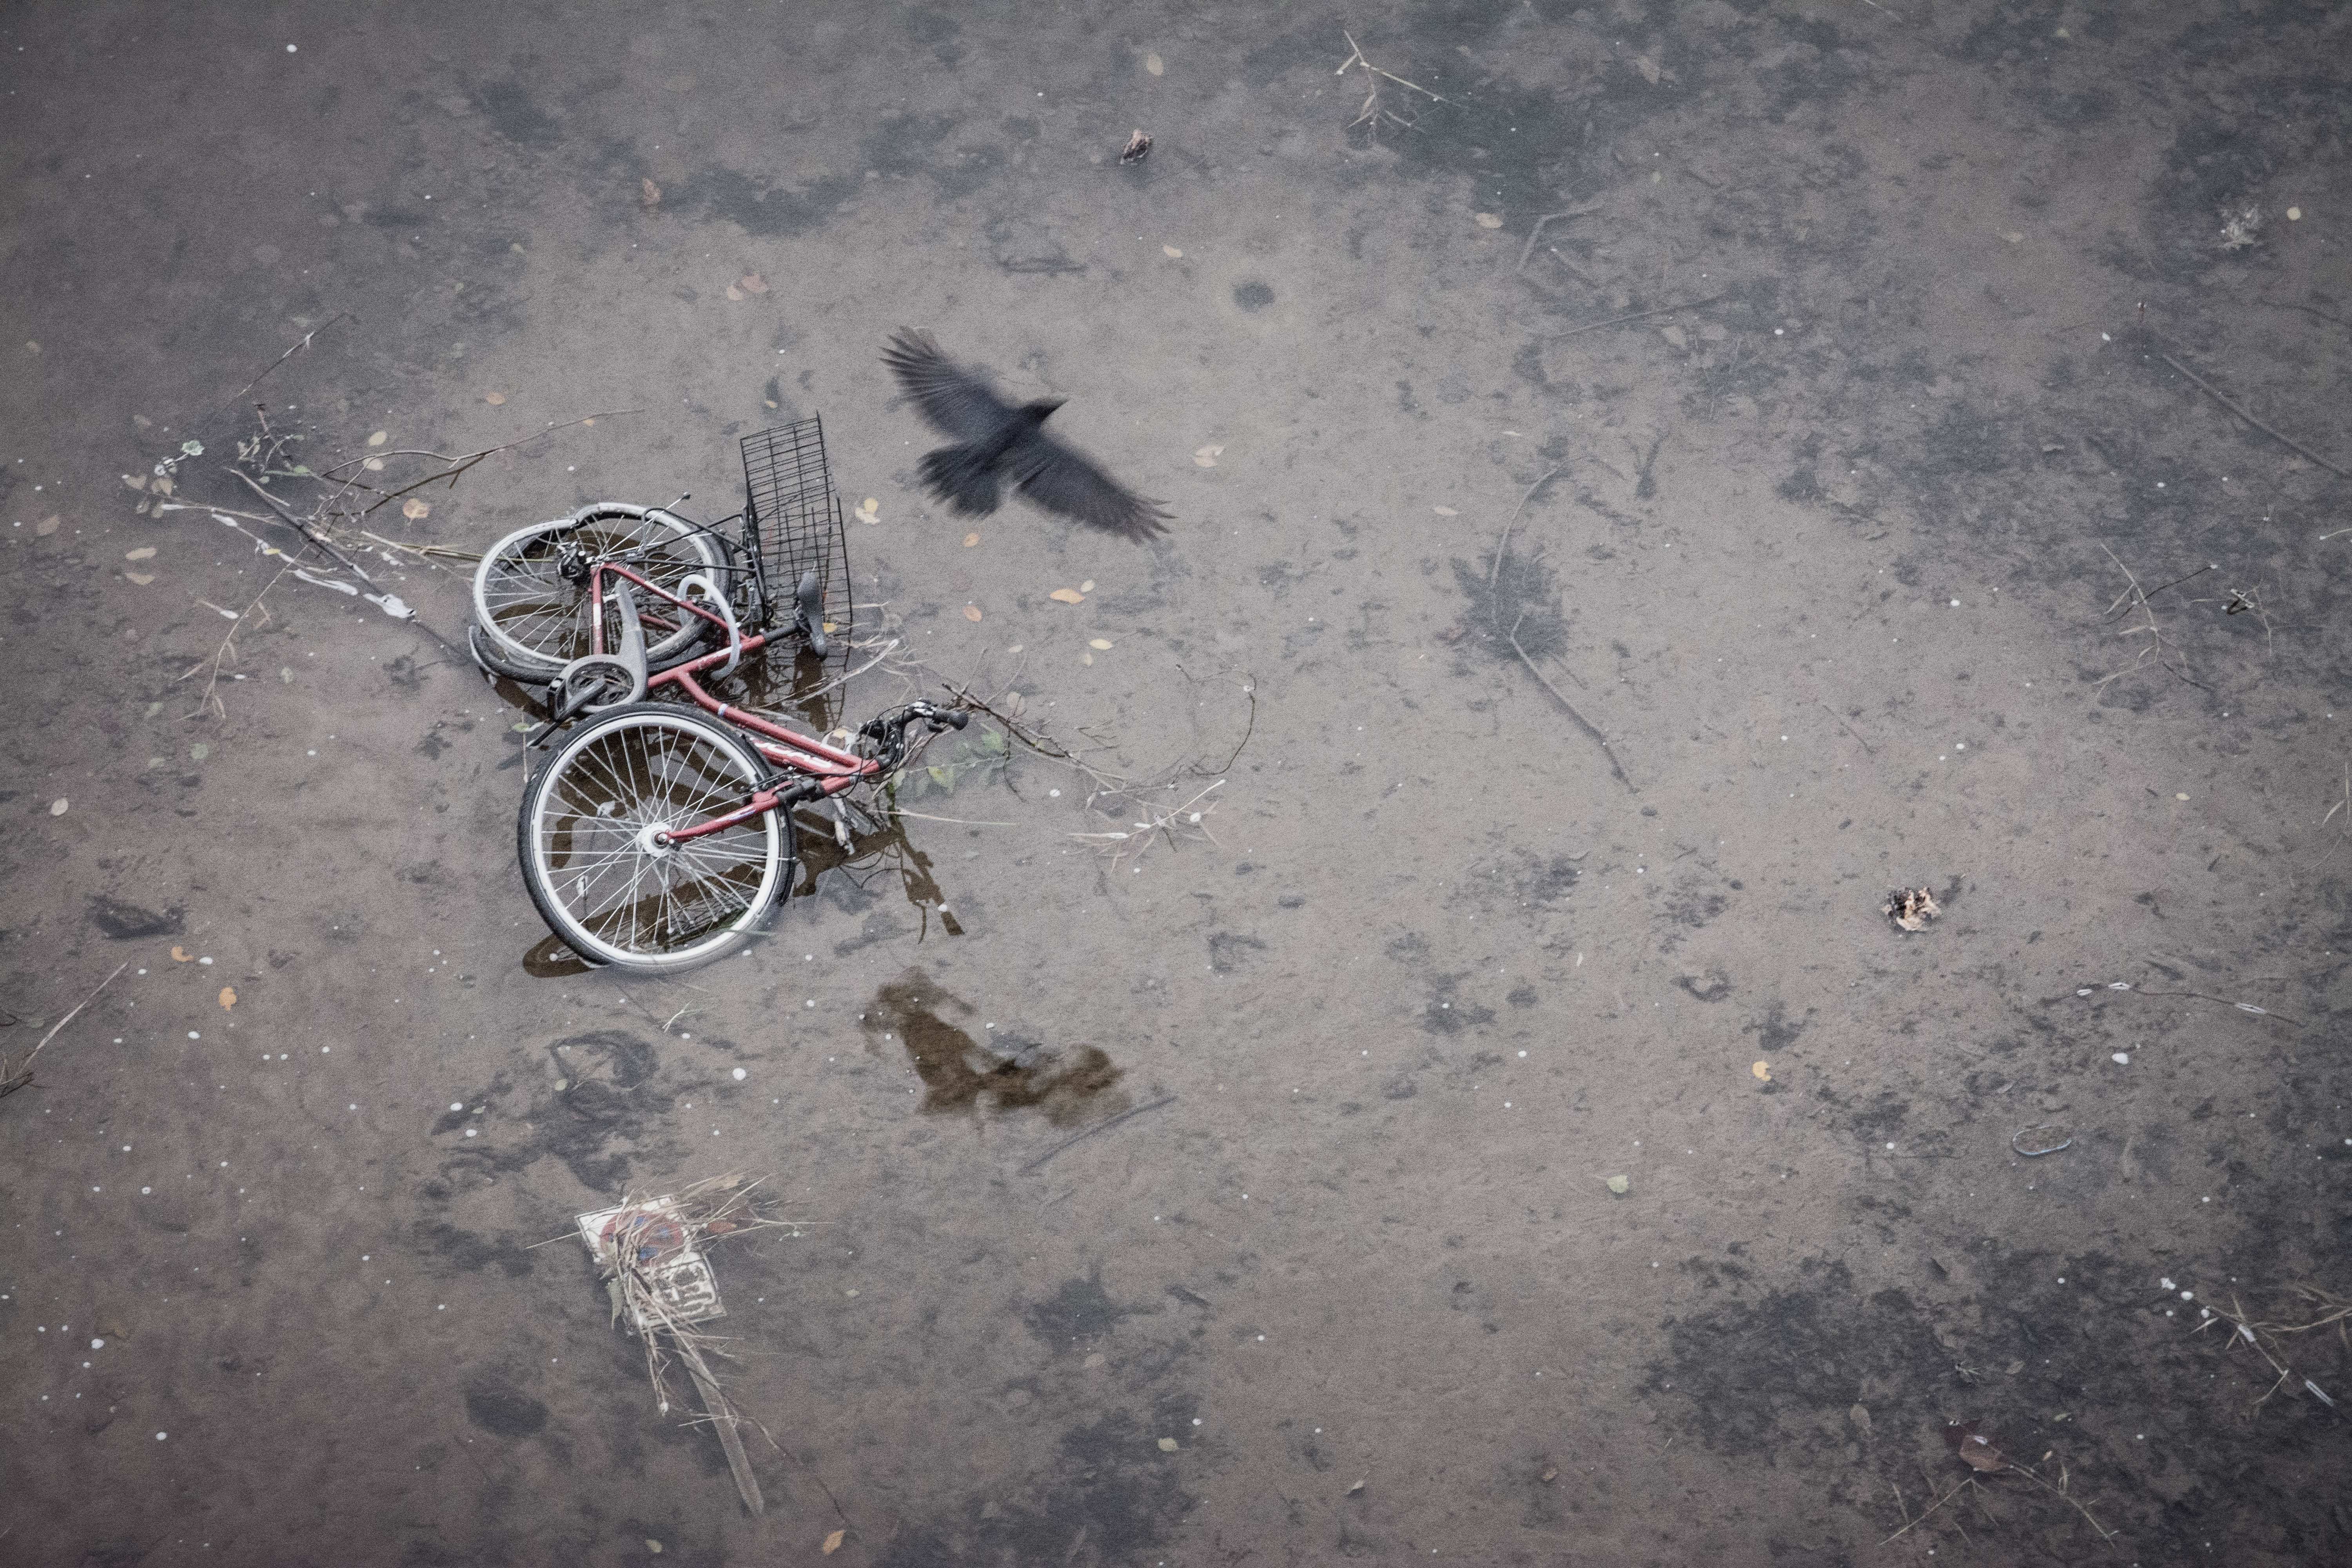 Requiem for a bicycle - (c) Michael Gündling